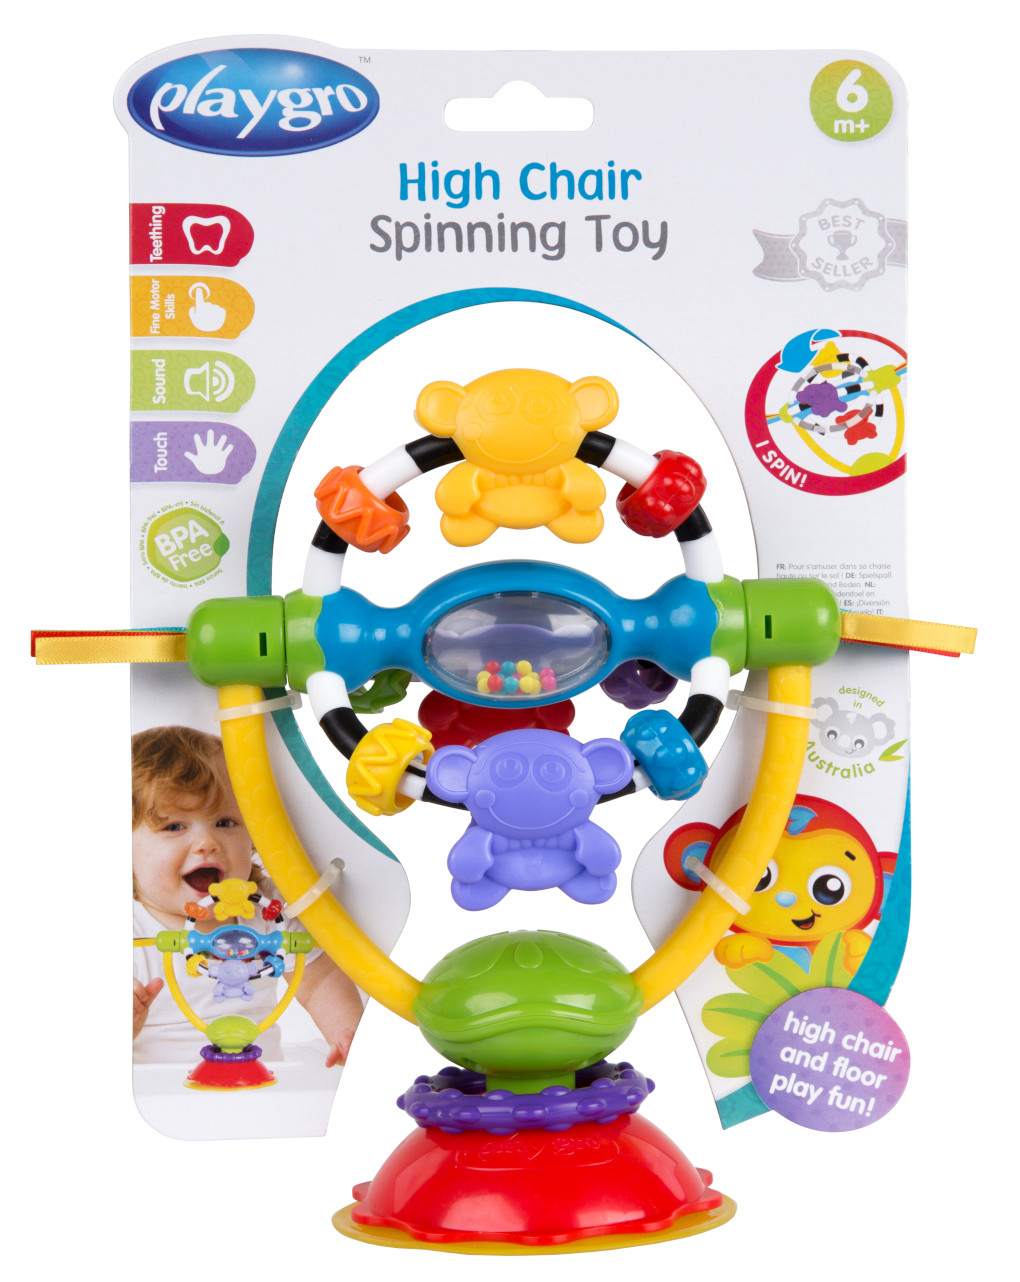 Playgro - high chair spinning toy - Playgro